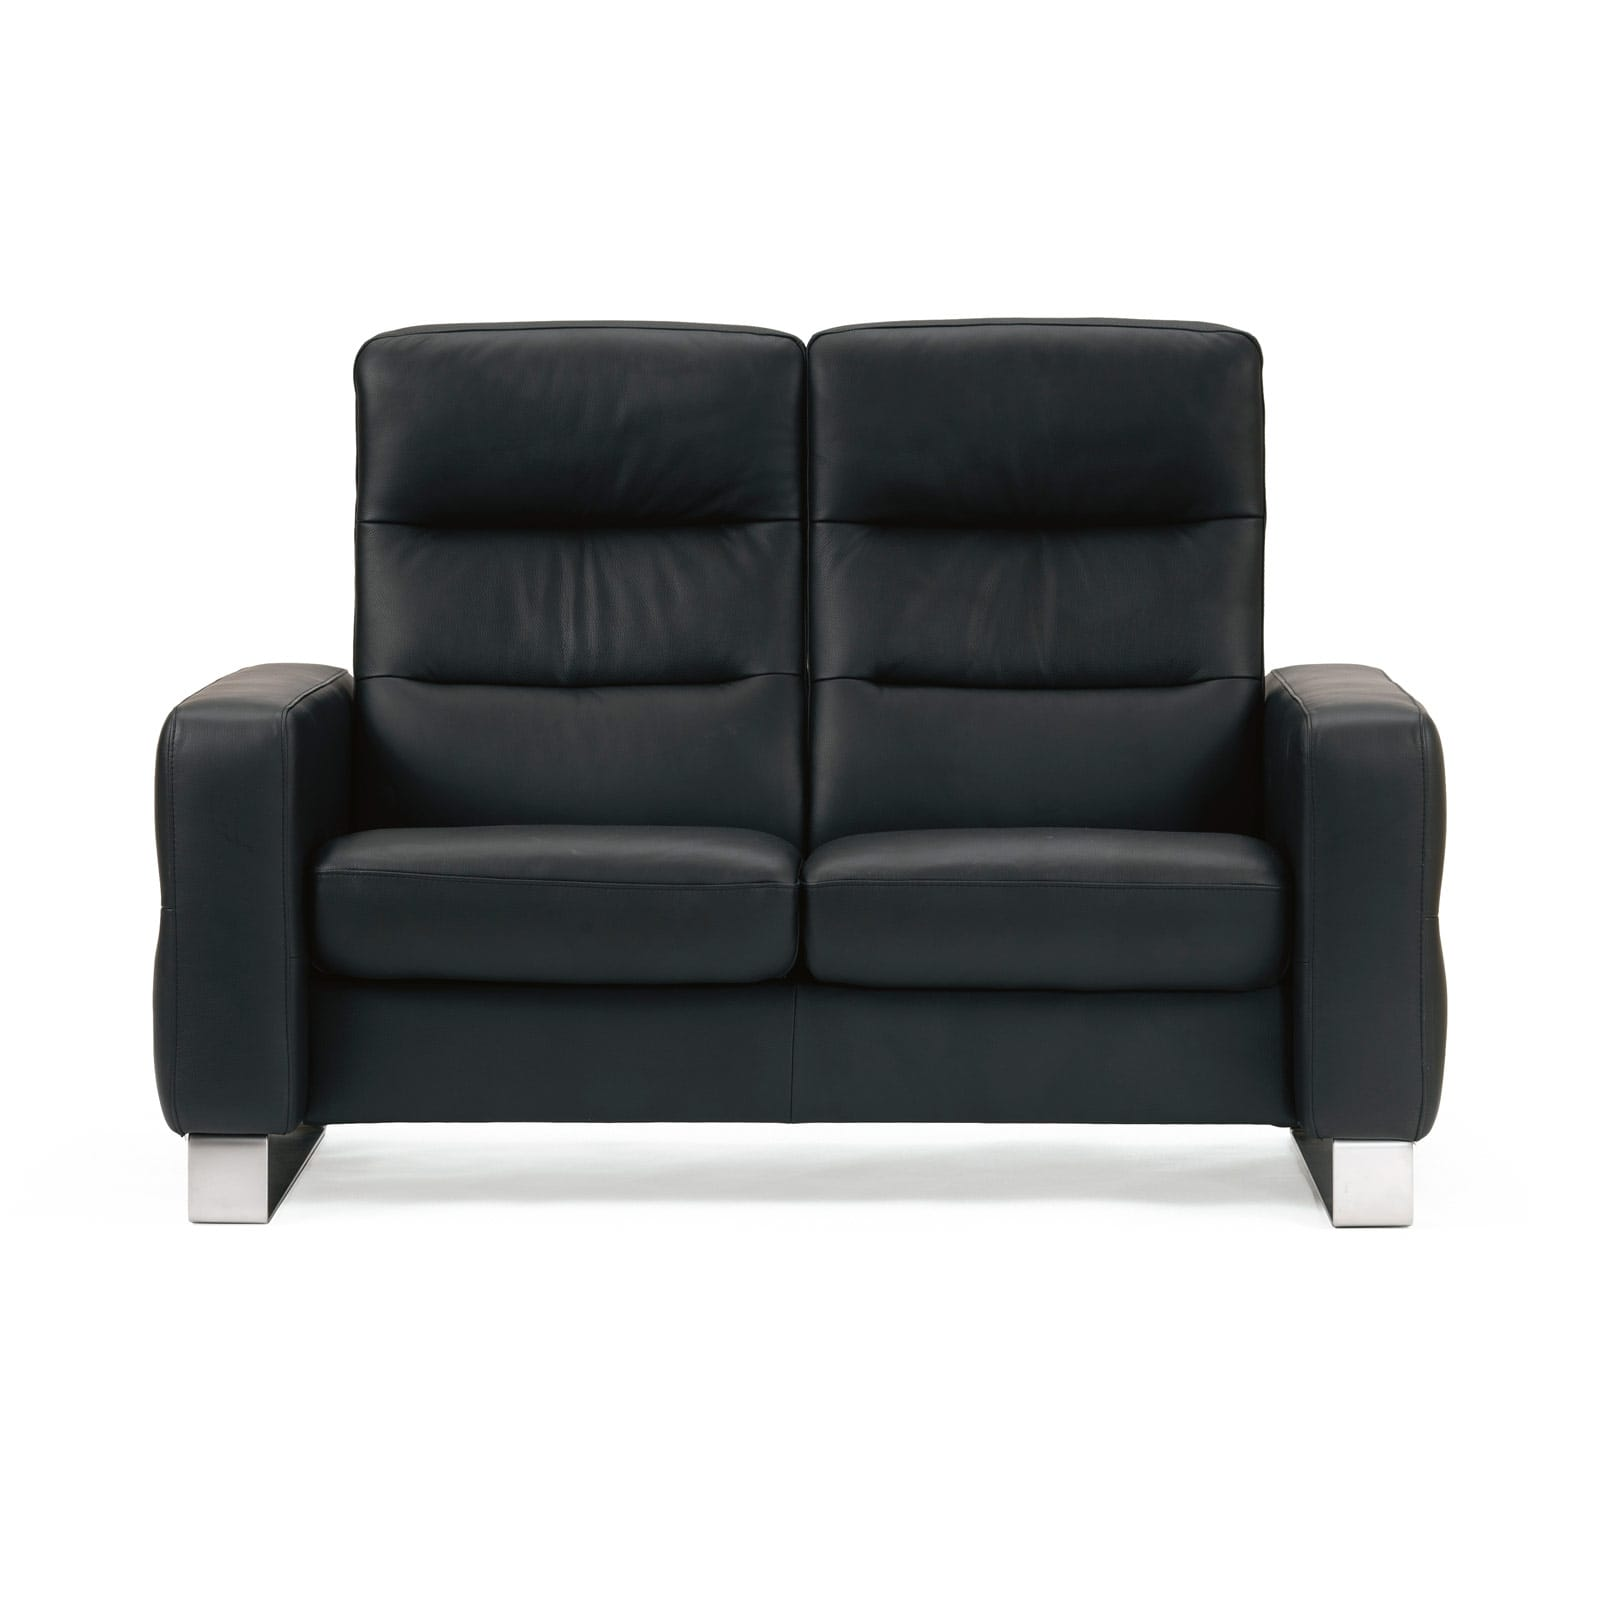 Stressless Sofa 2 Sitzer Wave M Hoch Paloma Black Stressless